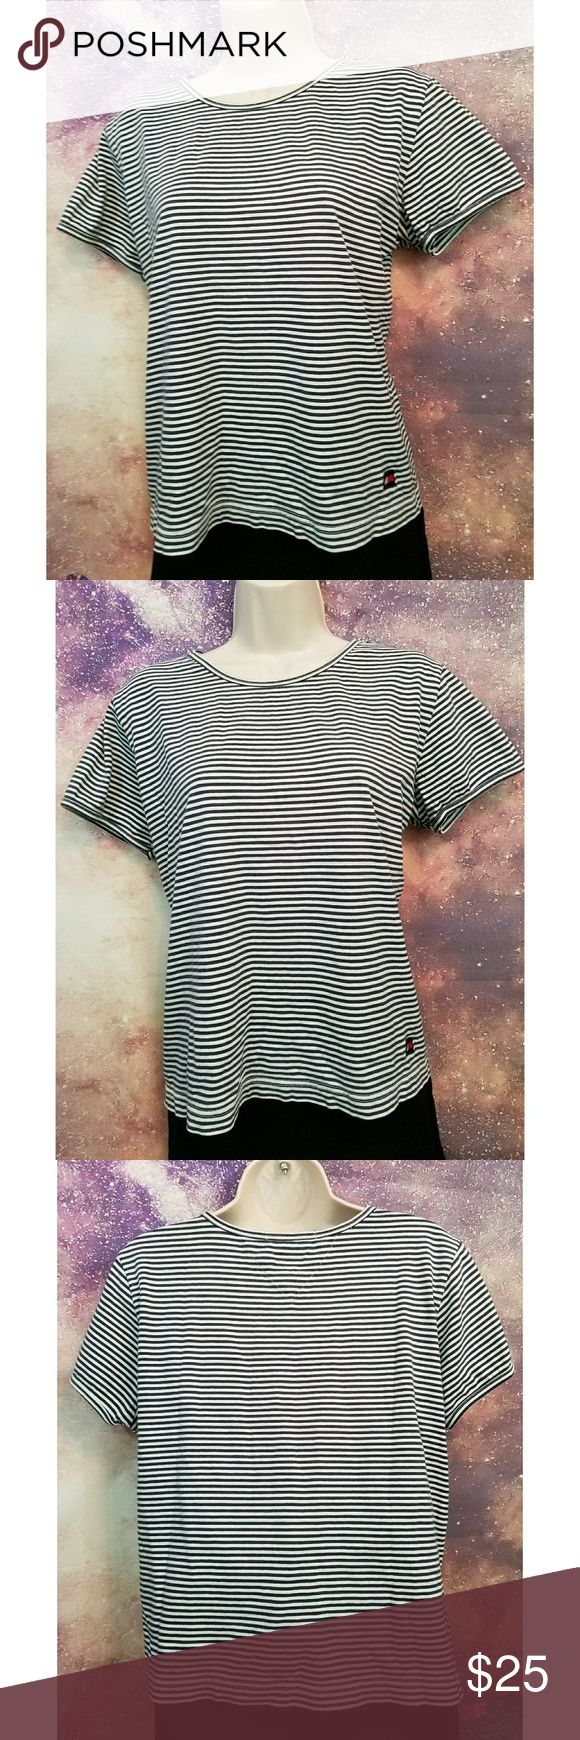 Tommy Hilfiger Stripe T-shirt Size XL blue and white stripe Tommy Hilfiger shirt Tommy Hilfiger Tops Tees - Short Sleeve